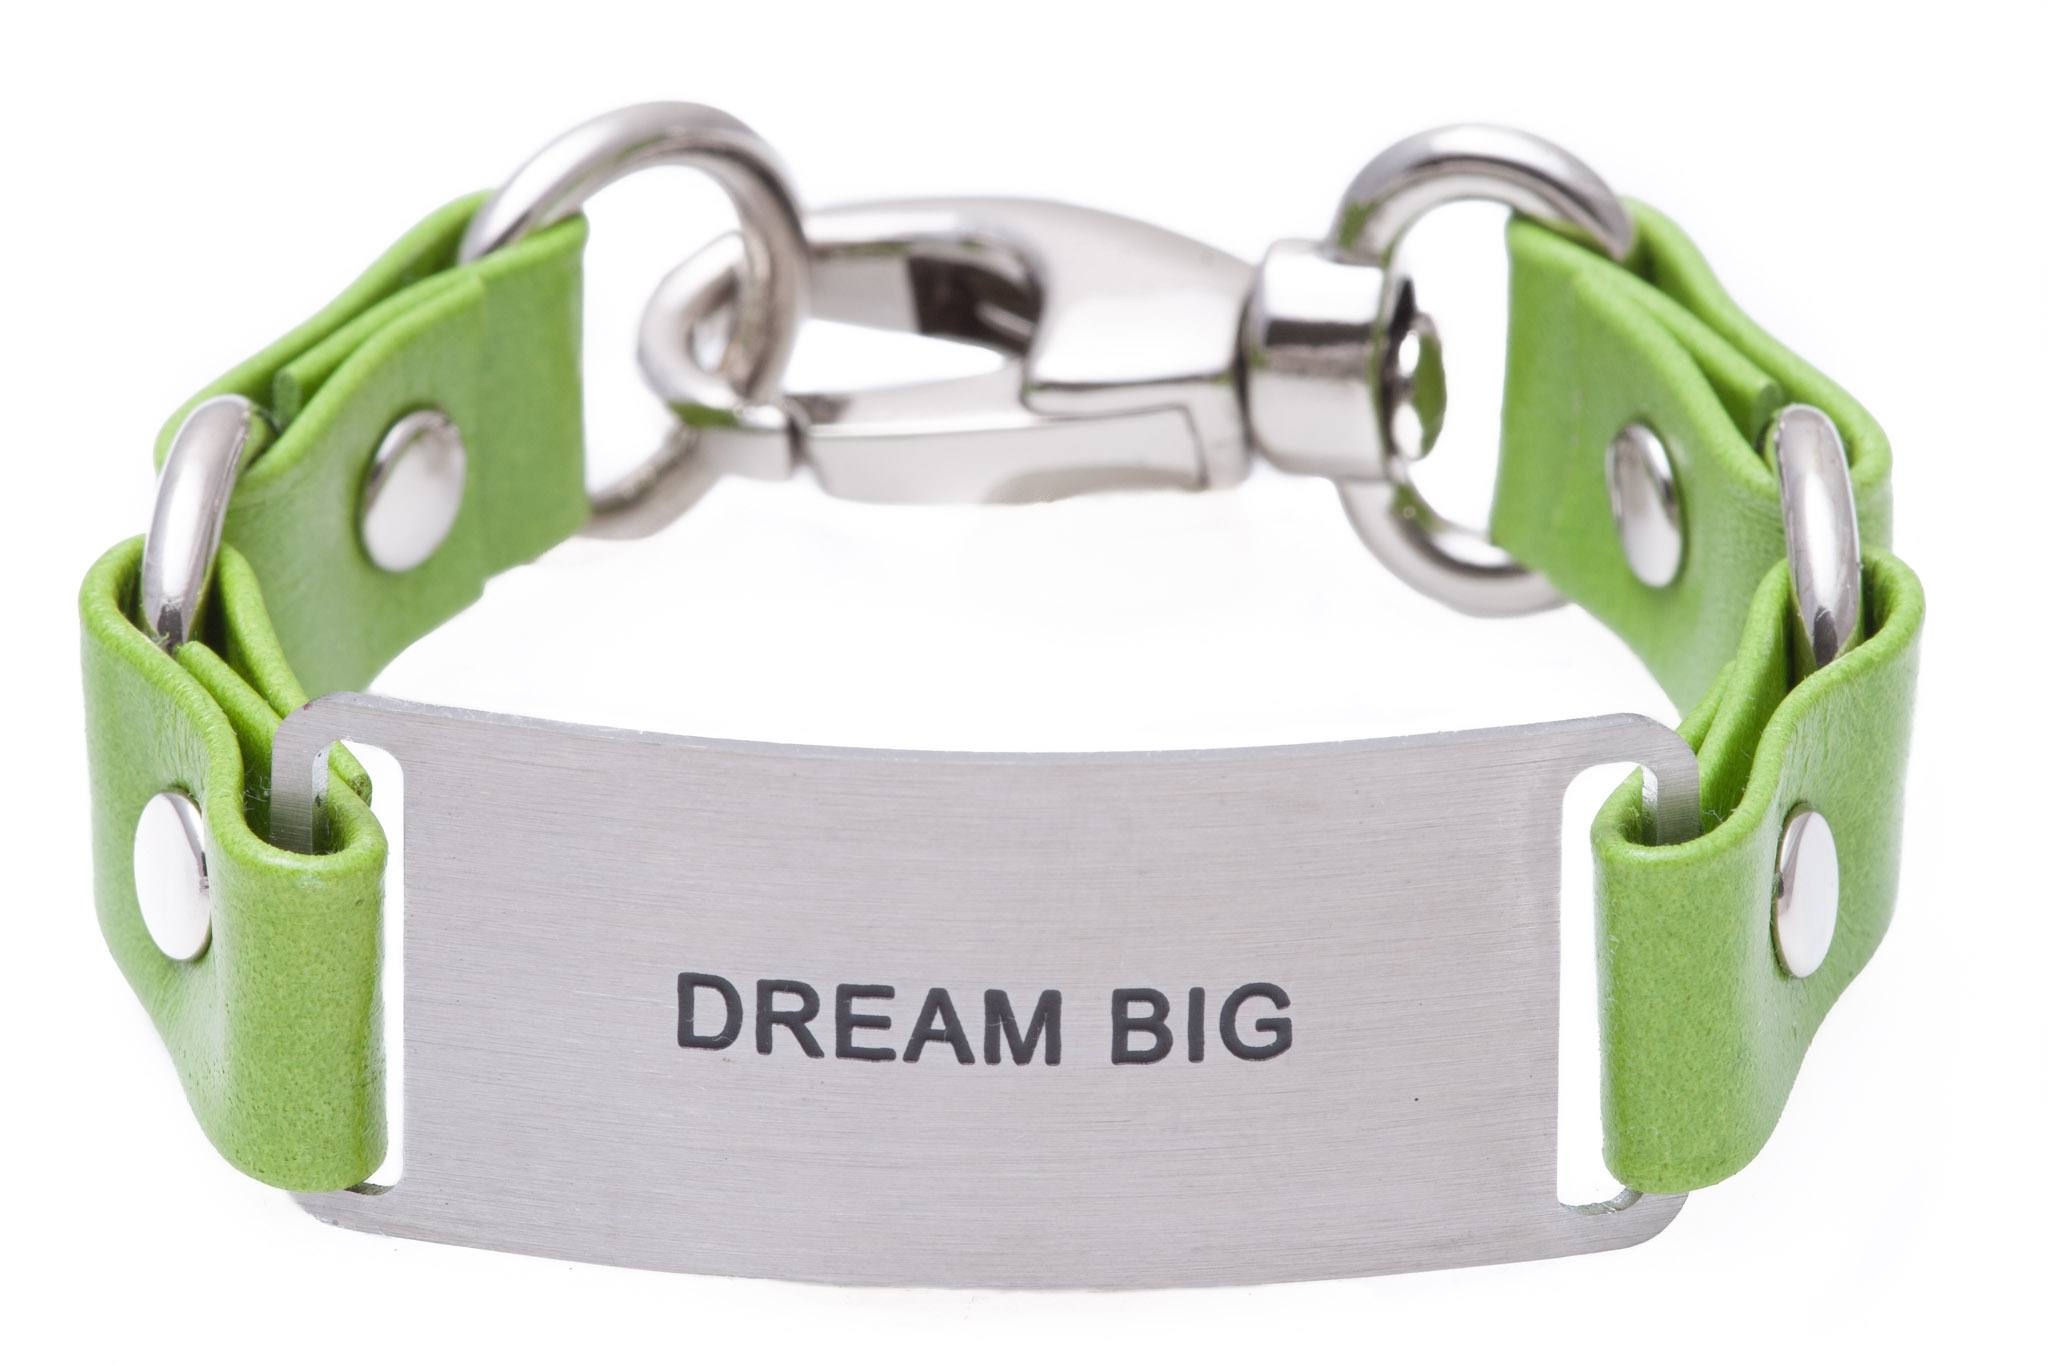 Load image into Gallery viewer, Message Bracelet Green Leather Dream Big